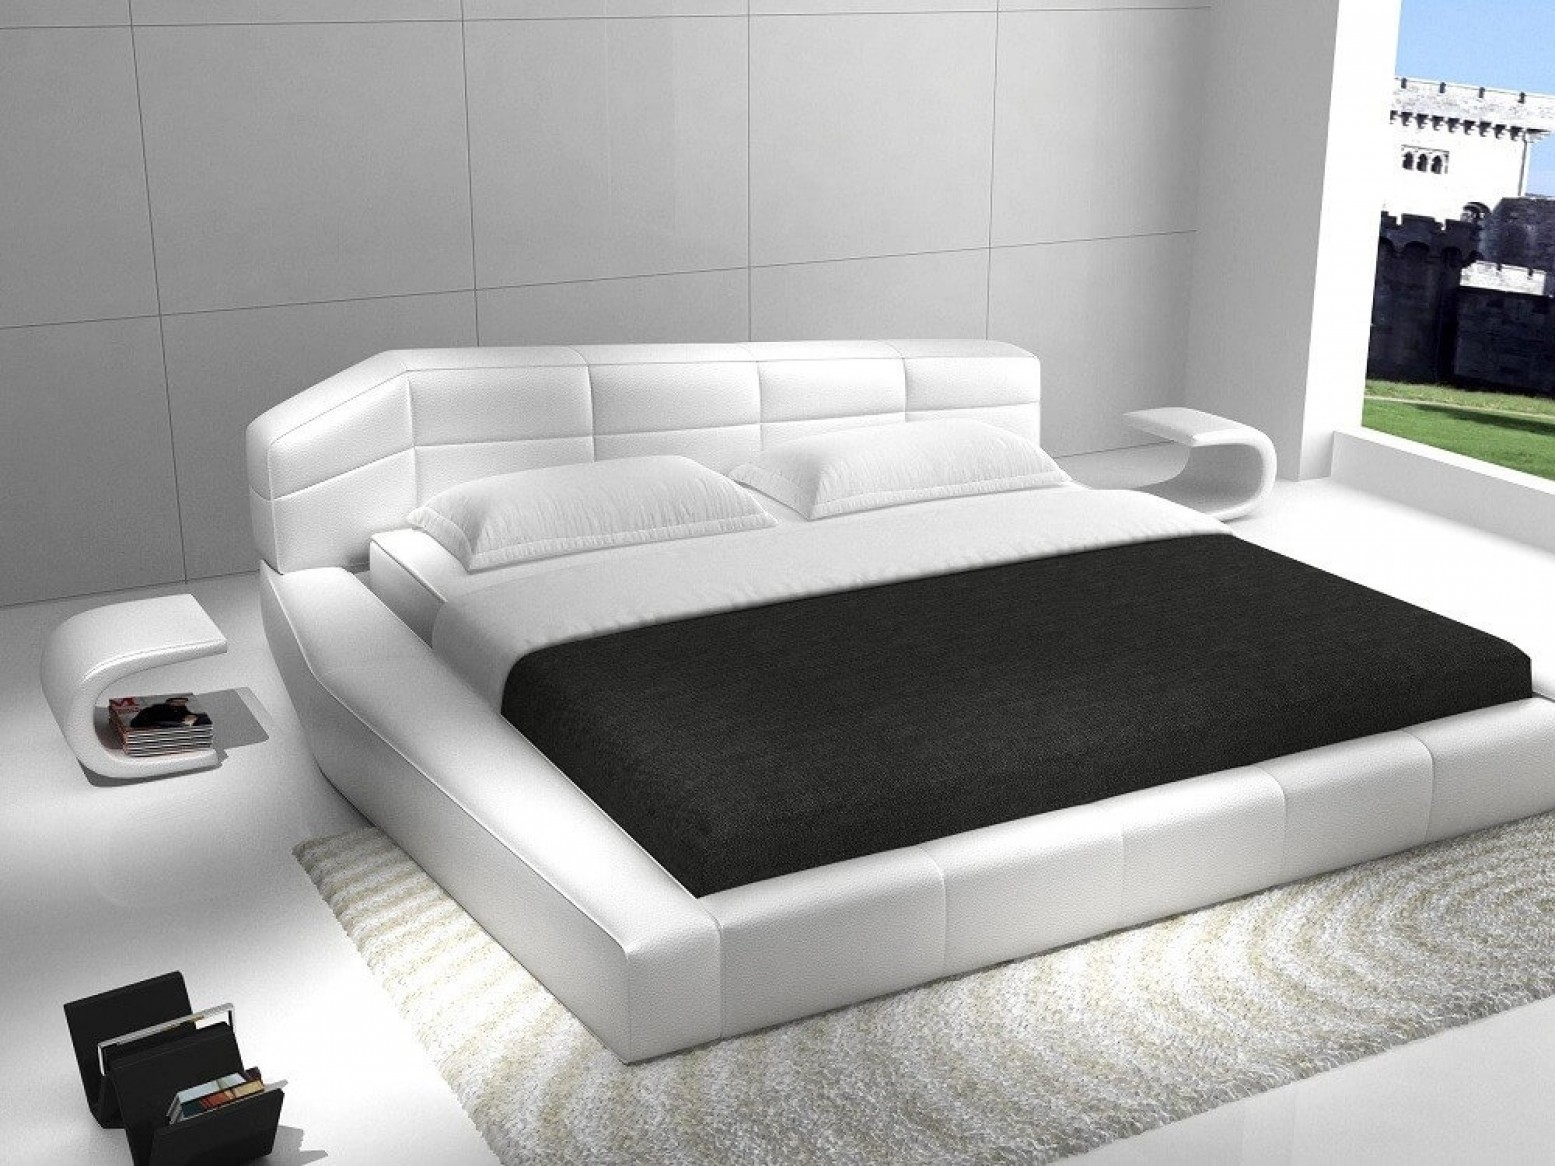 Picture of: Dream Modern Leather King Size Platform Bed White By J M Furniture Sohomod Com